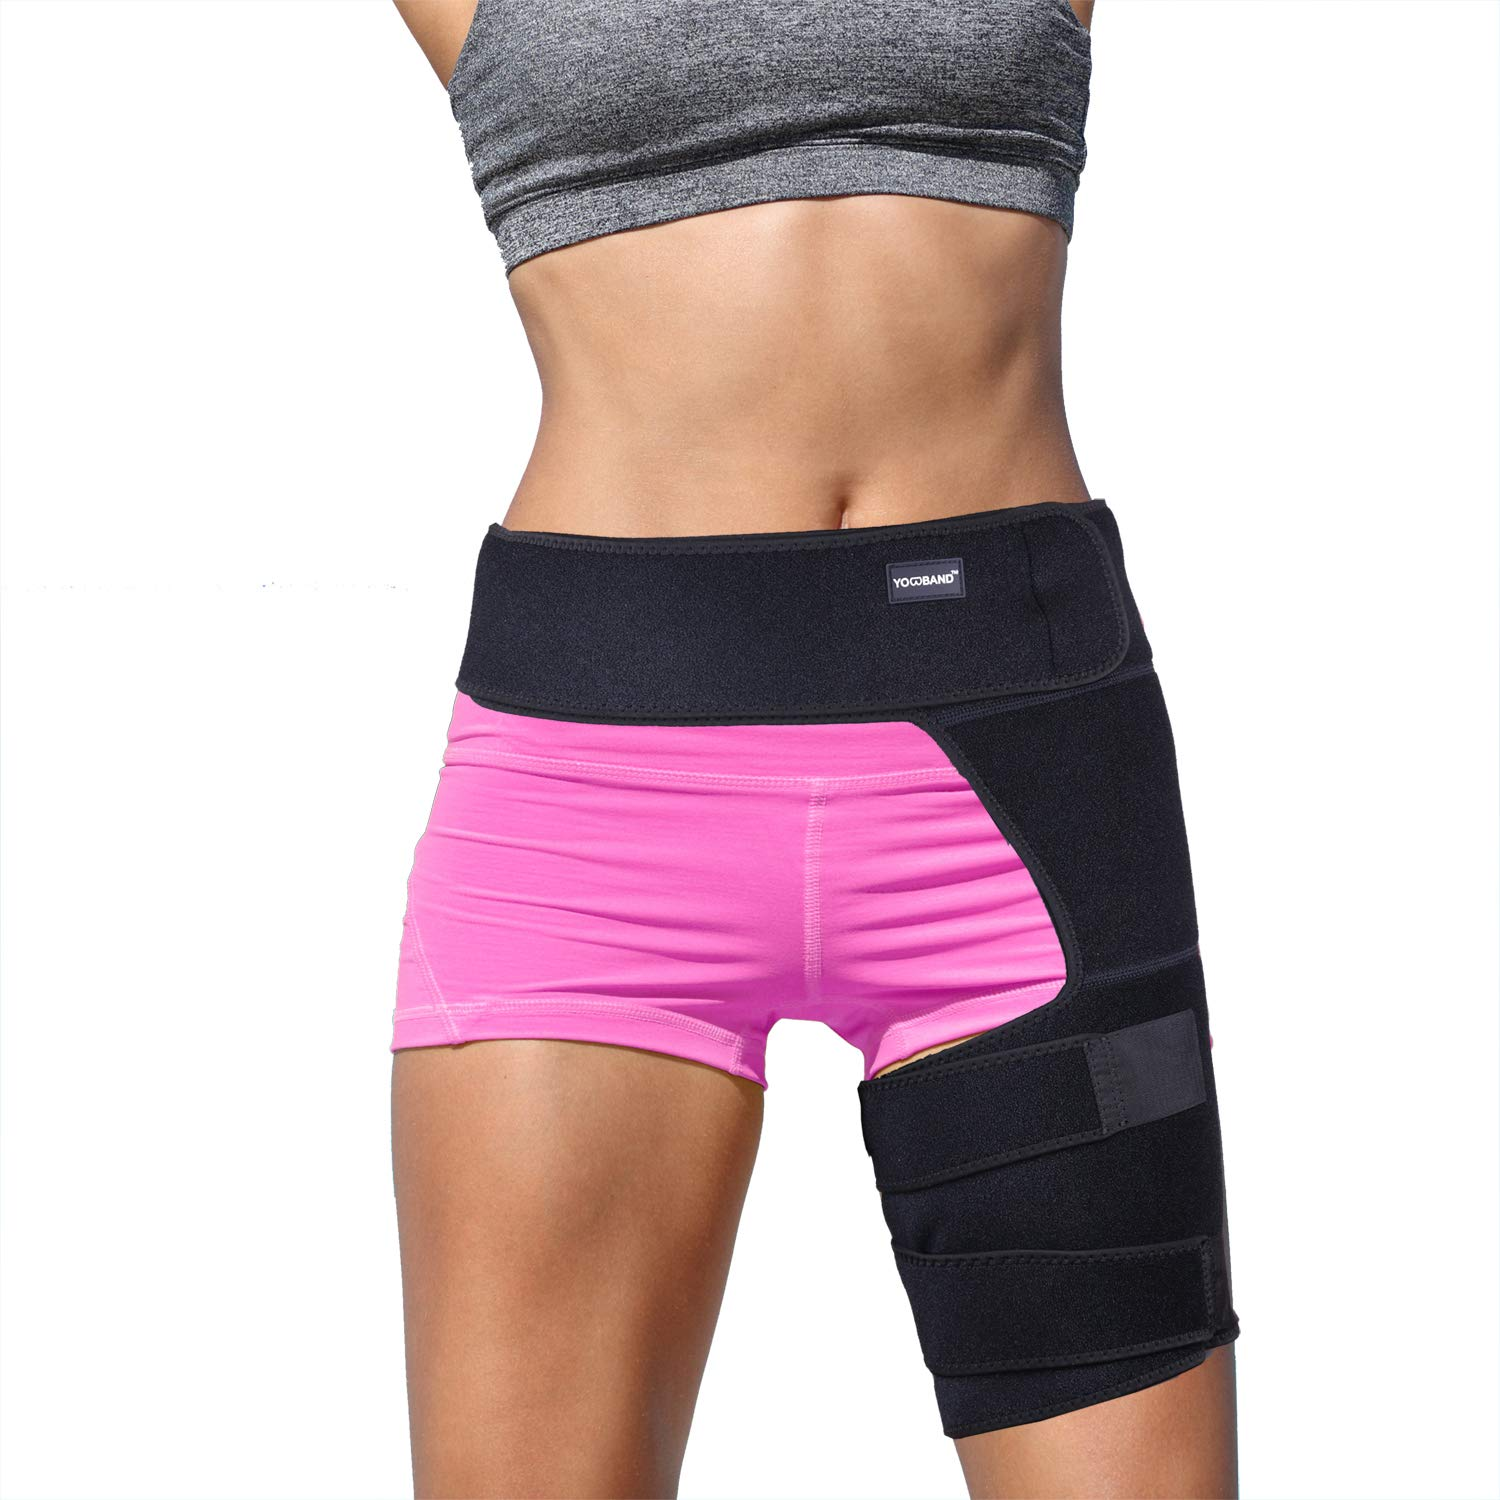 YOWBAND Hip & Groin Compression Brace,Support for Thigh,Nerve Pain Relief, Hamstring Recovery, Sciatica Wrap for Flexor Strains,Arthritis,Quadriceps,Joints,Pulled Muscles